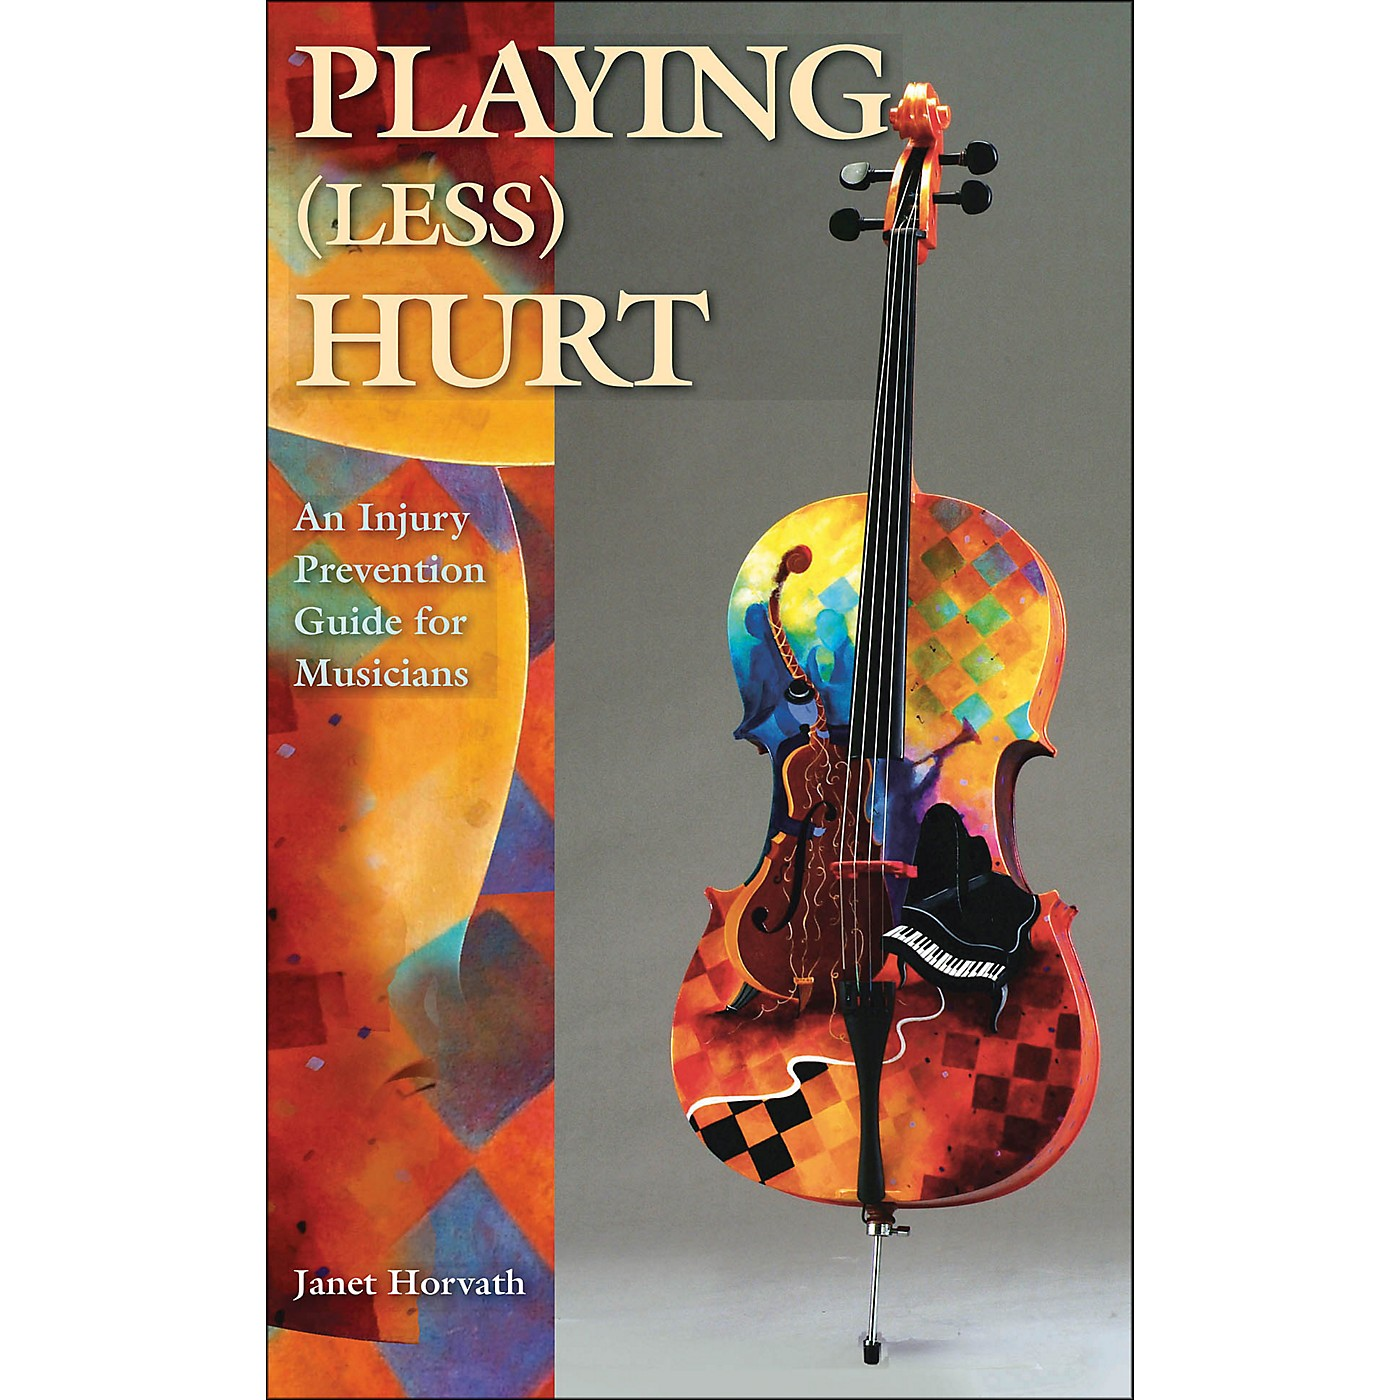 Hal Leonard Playing Less Hurt: An Injury Prevention Guide for Musicians thumbnail